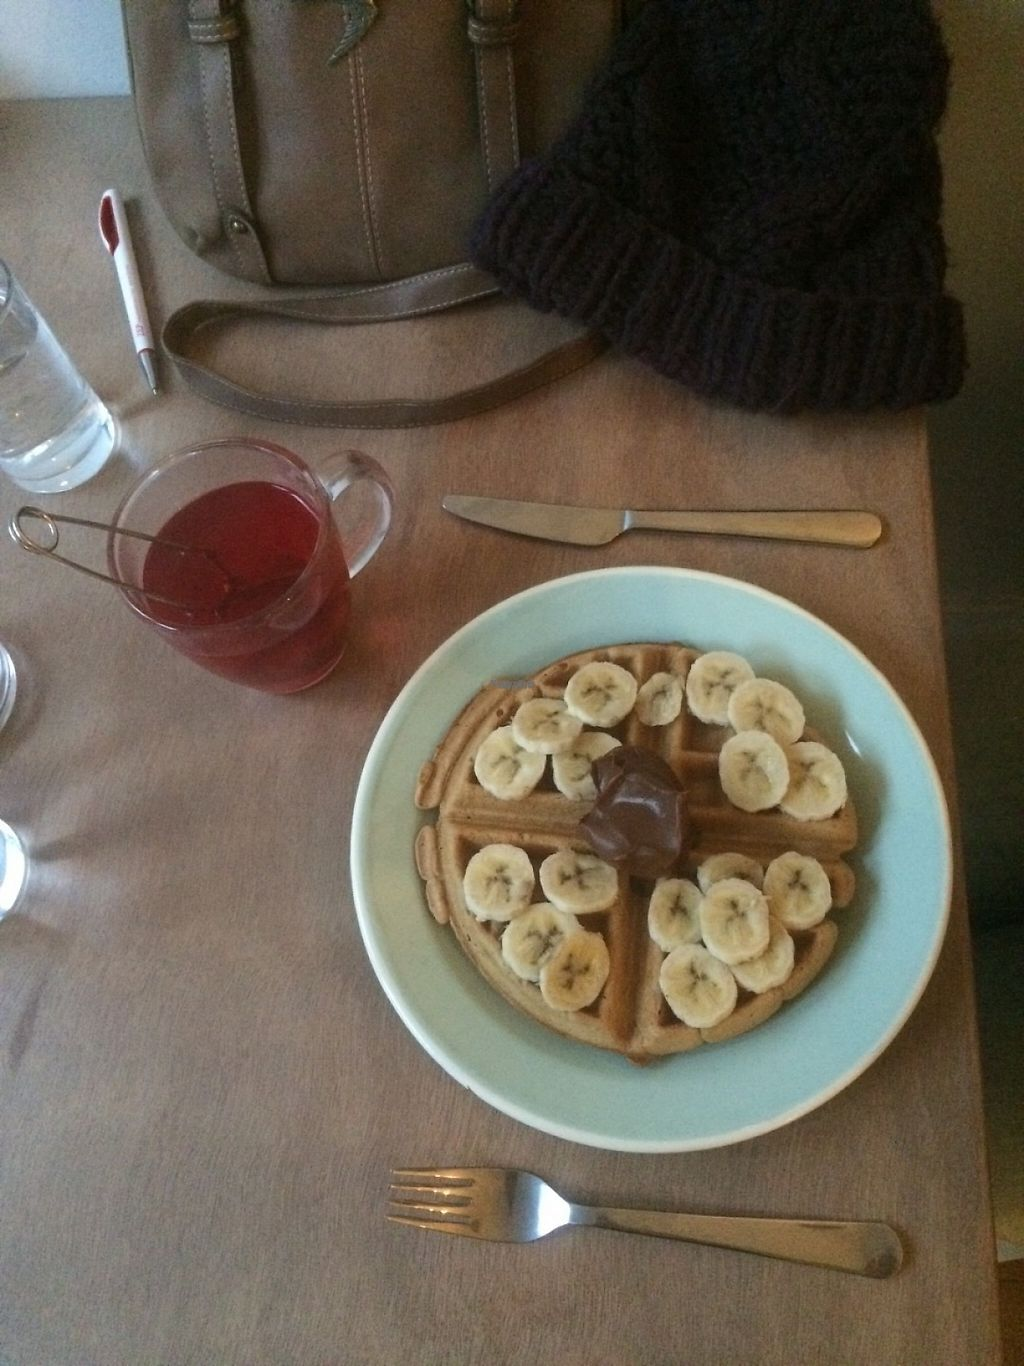 """Photo of Brunchroom  by <a href=""""/members/profile/small_trees"""">small_trees</a> <br/>Vegan Nutella and banana.  <br/> December 17, 2016  - <a href='/contact/abuse/image/83956/202166'>Report</a>"""